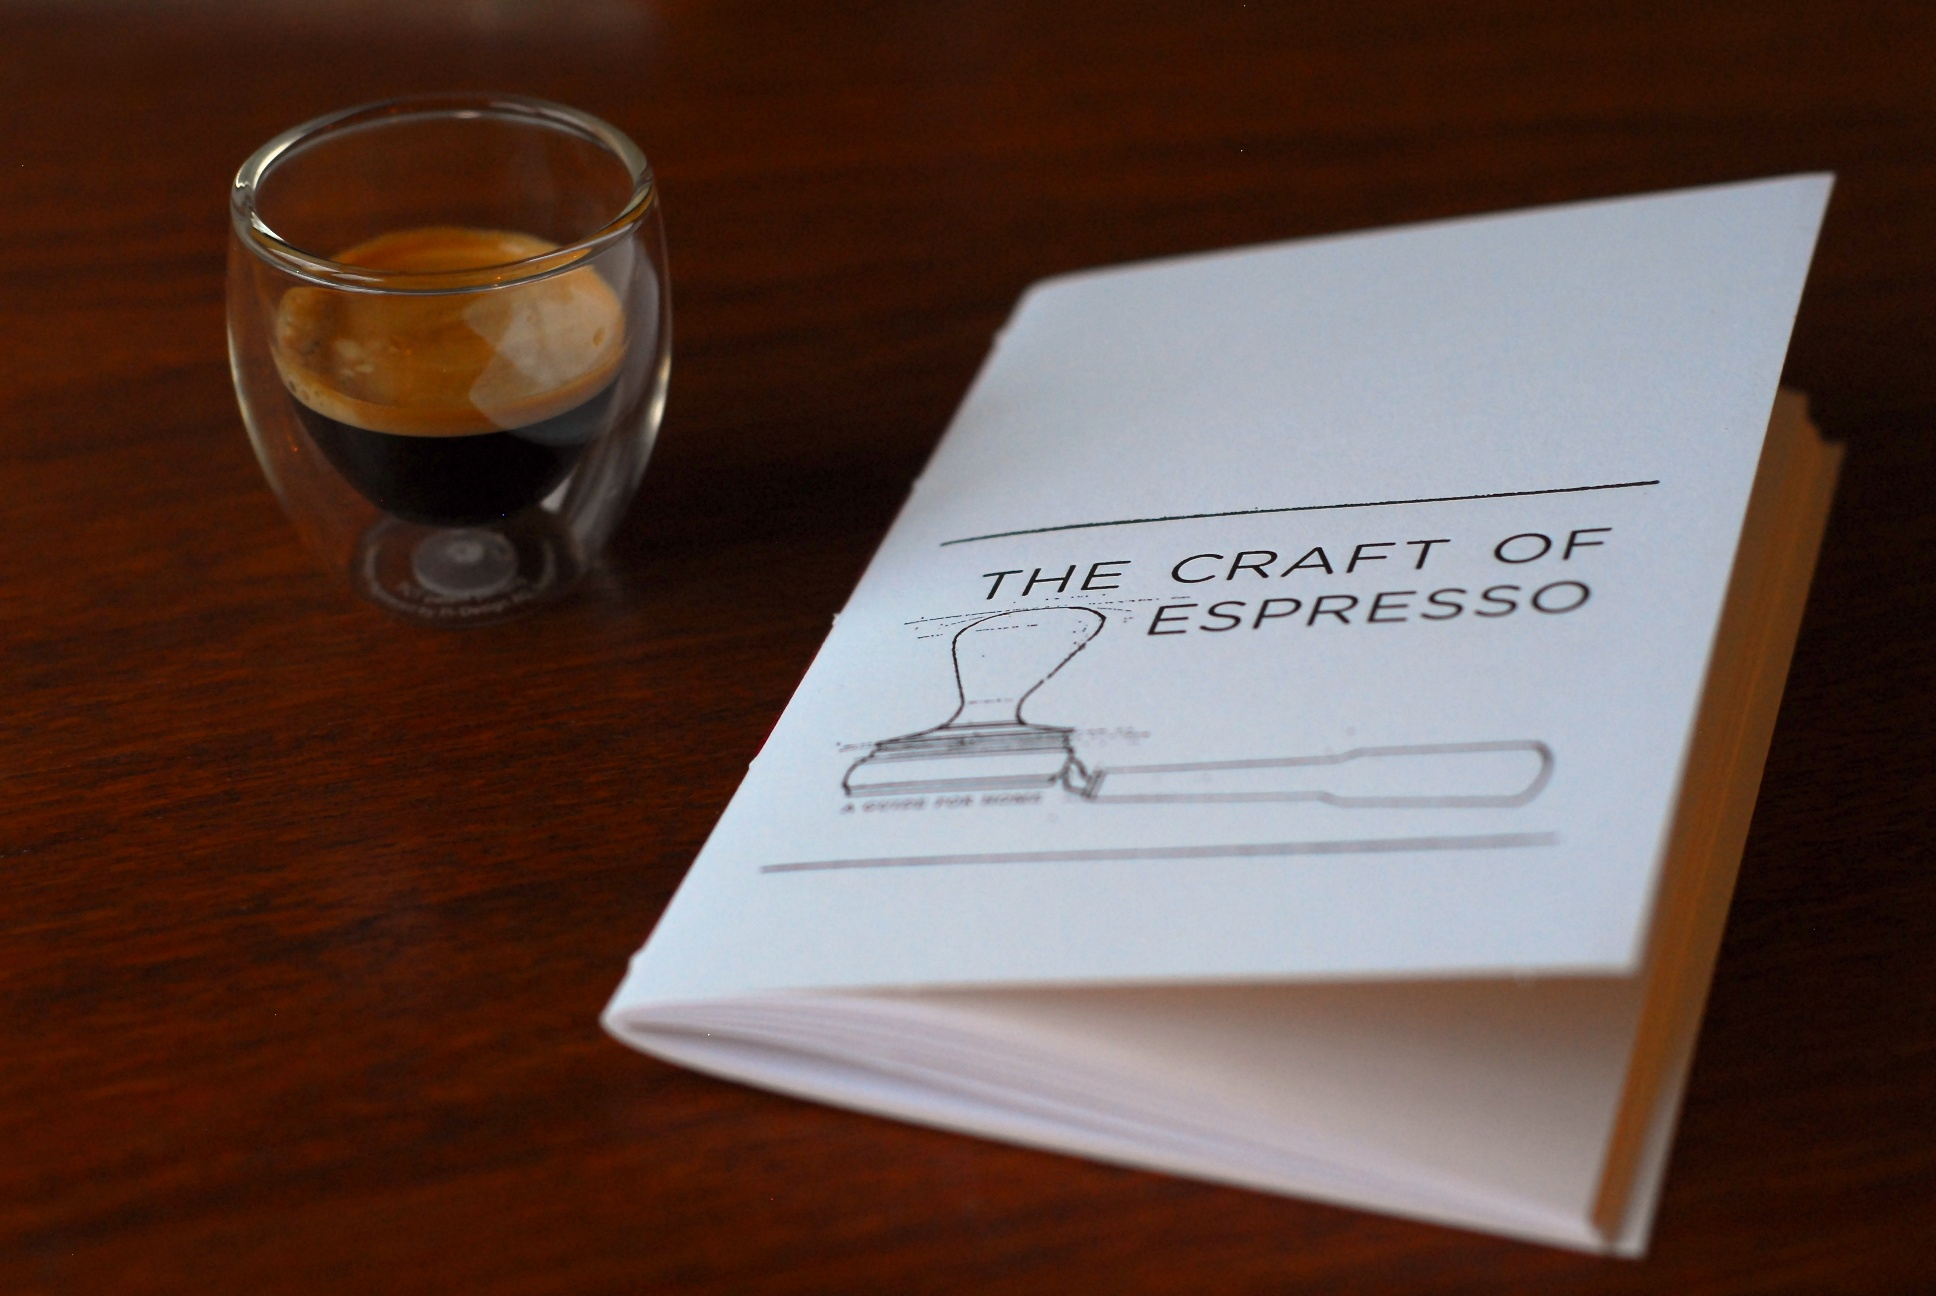 Clive Coffee's The Craft of Espresso – Dear Coffee, I Love You.